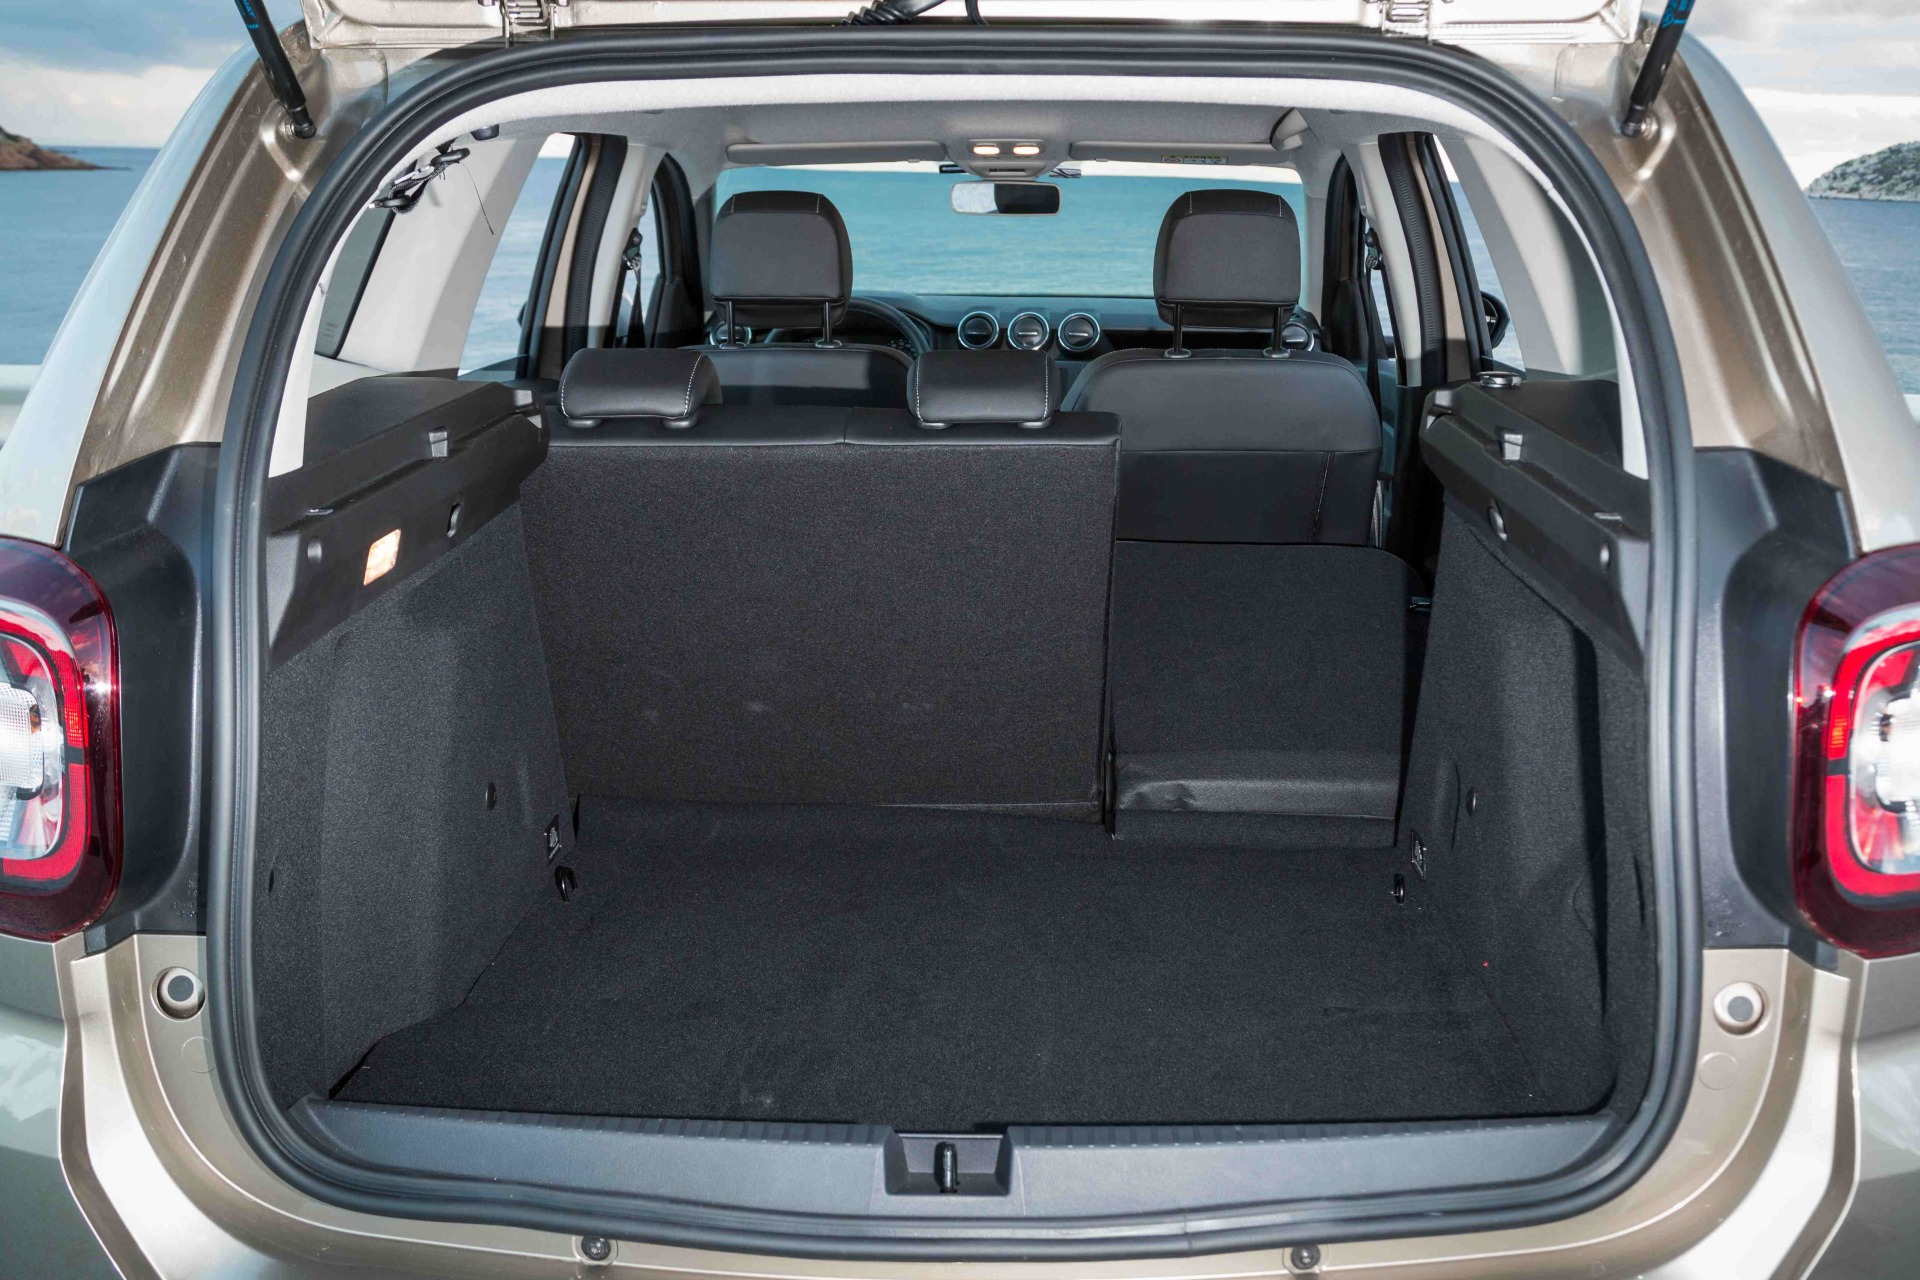 essai dacia duster 2018 notre avis sur le nouveau duster dci 110 photo 34 l 39 argus. Black Bedroom Furniture Sets. Home Design Ideas